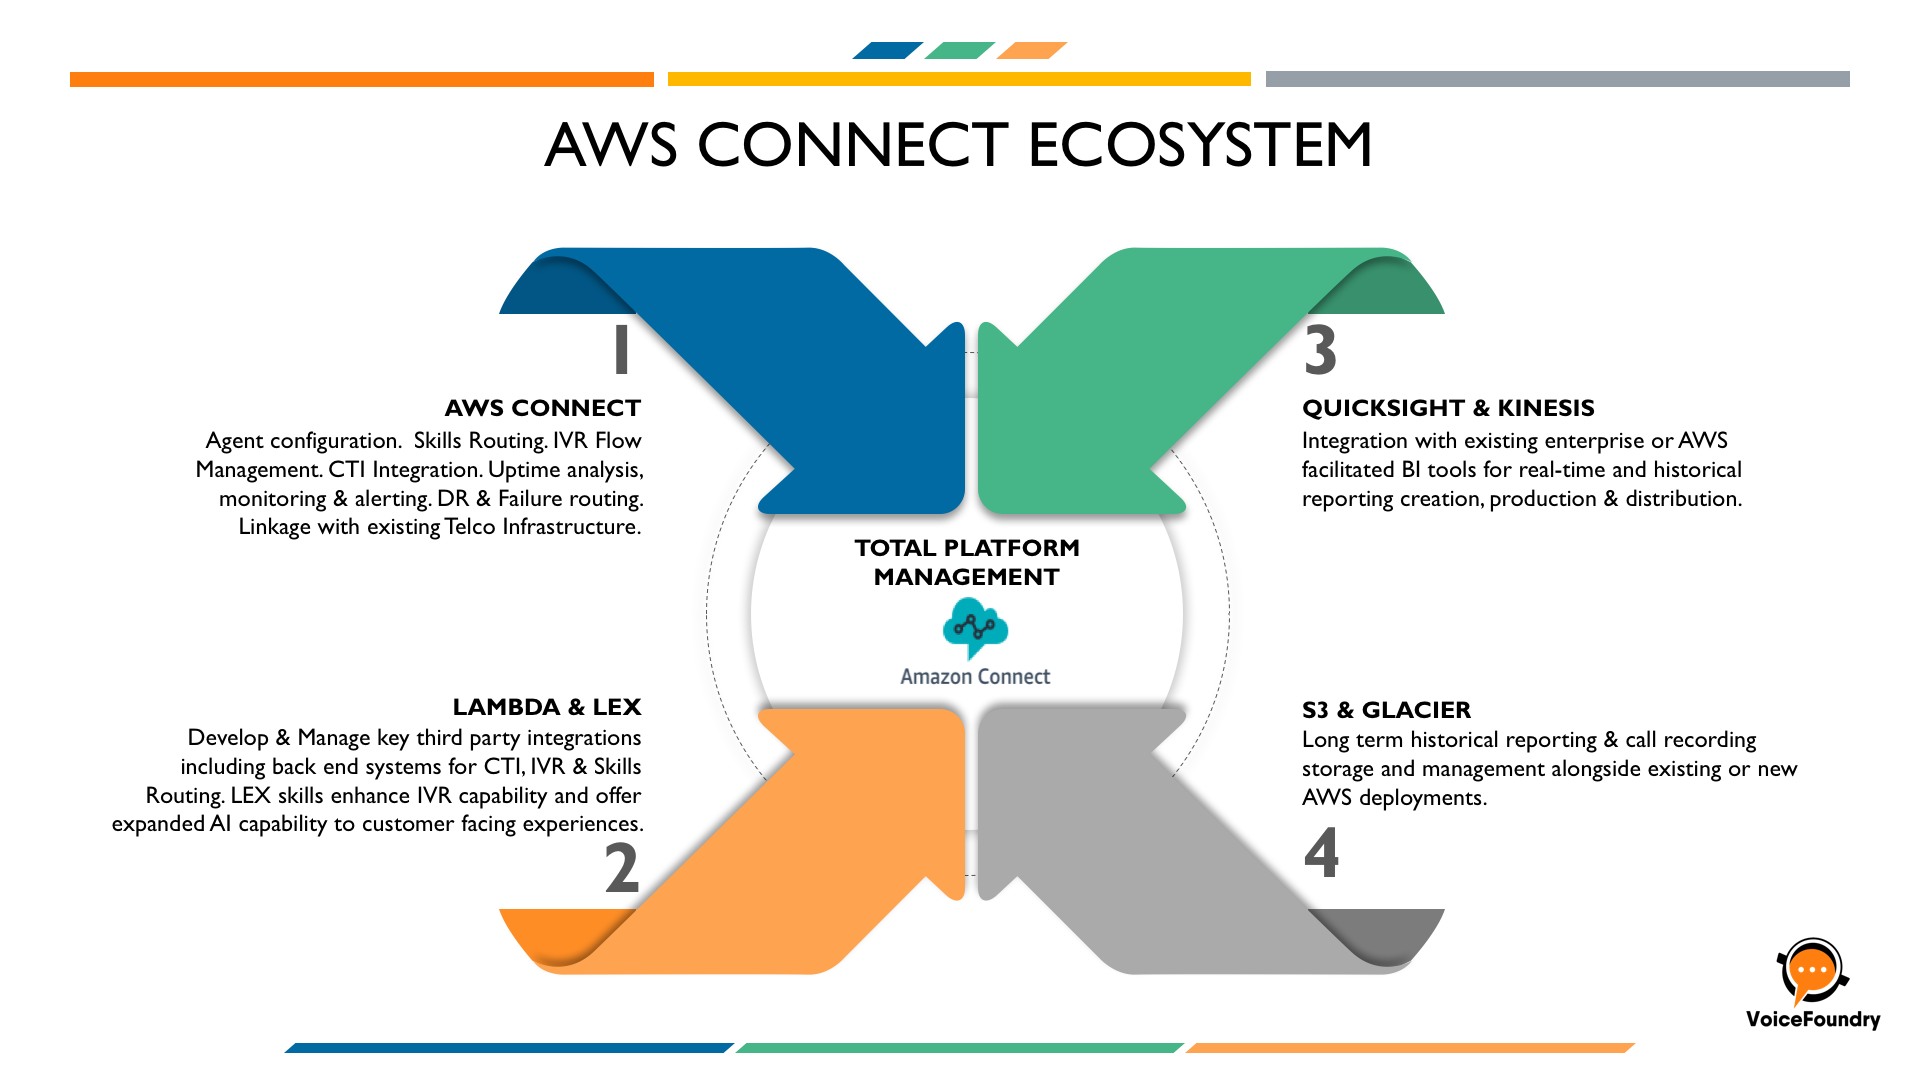 AWS Connect Ecosystem